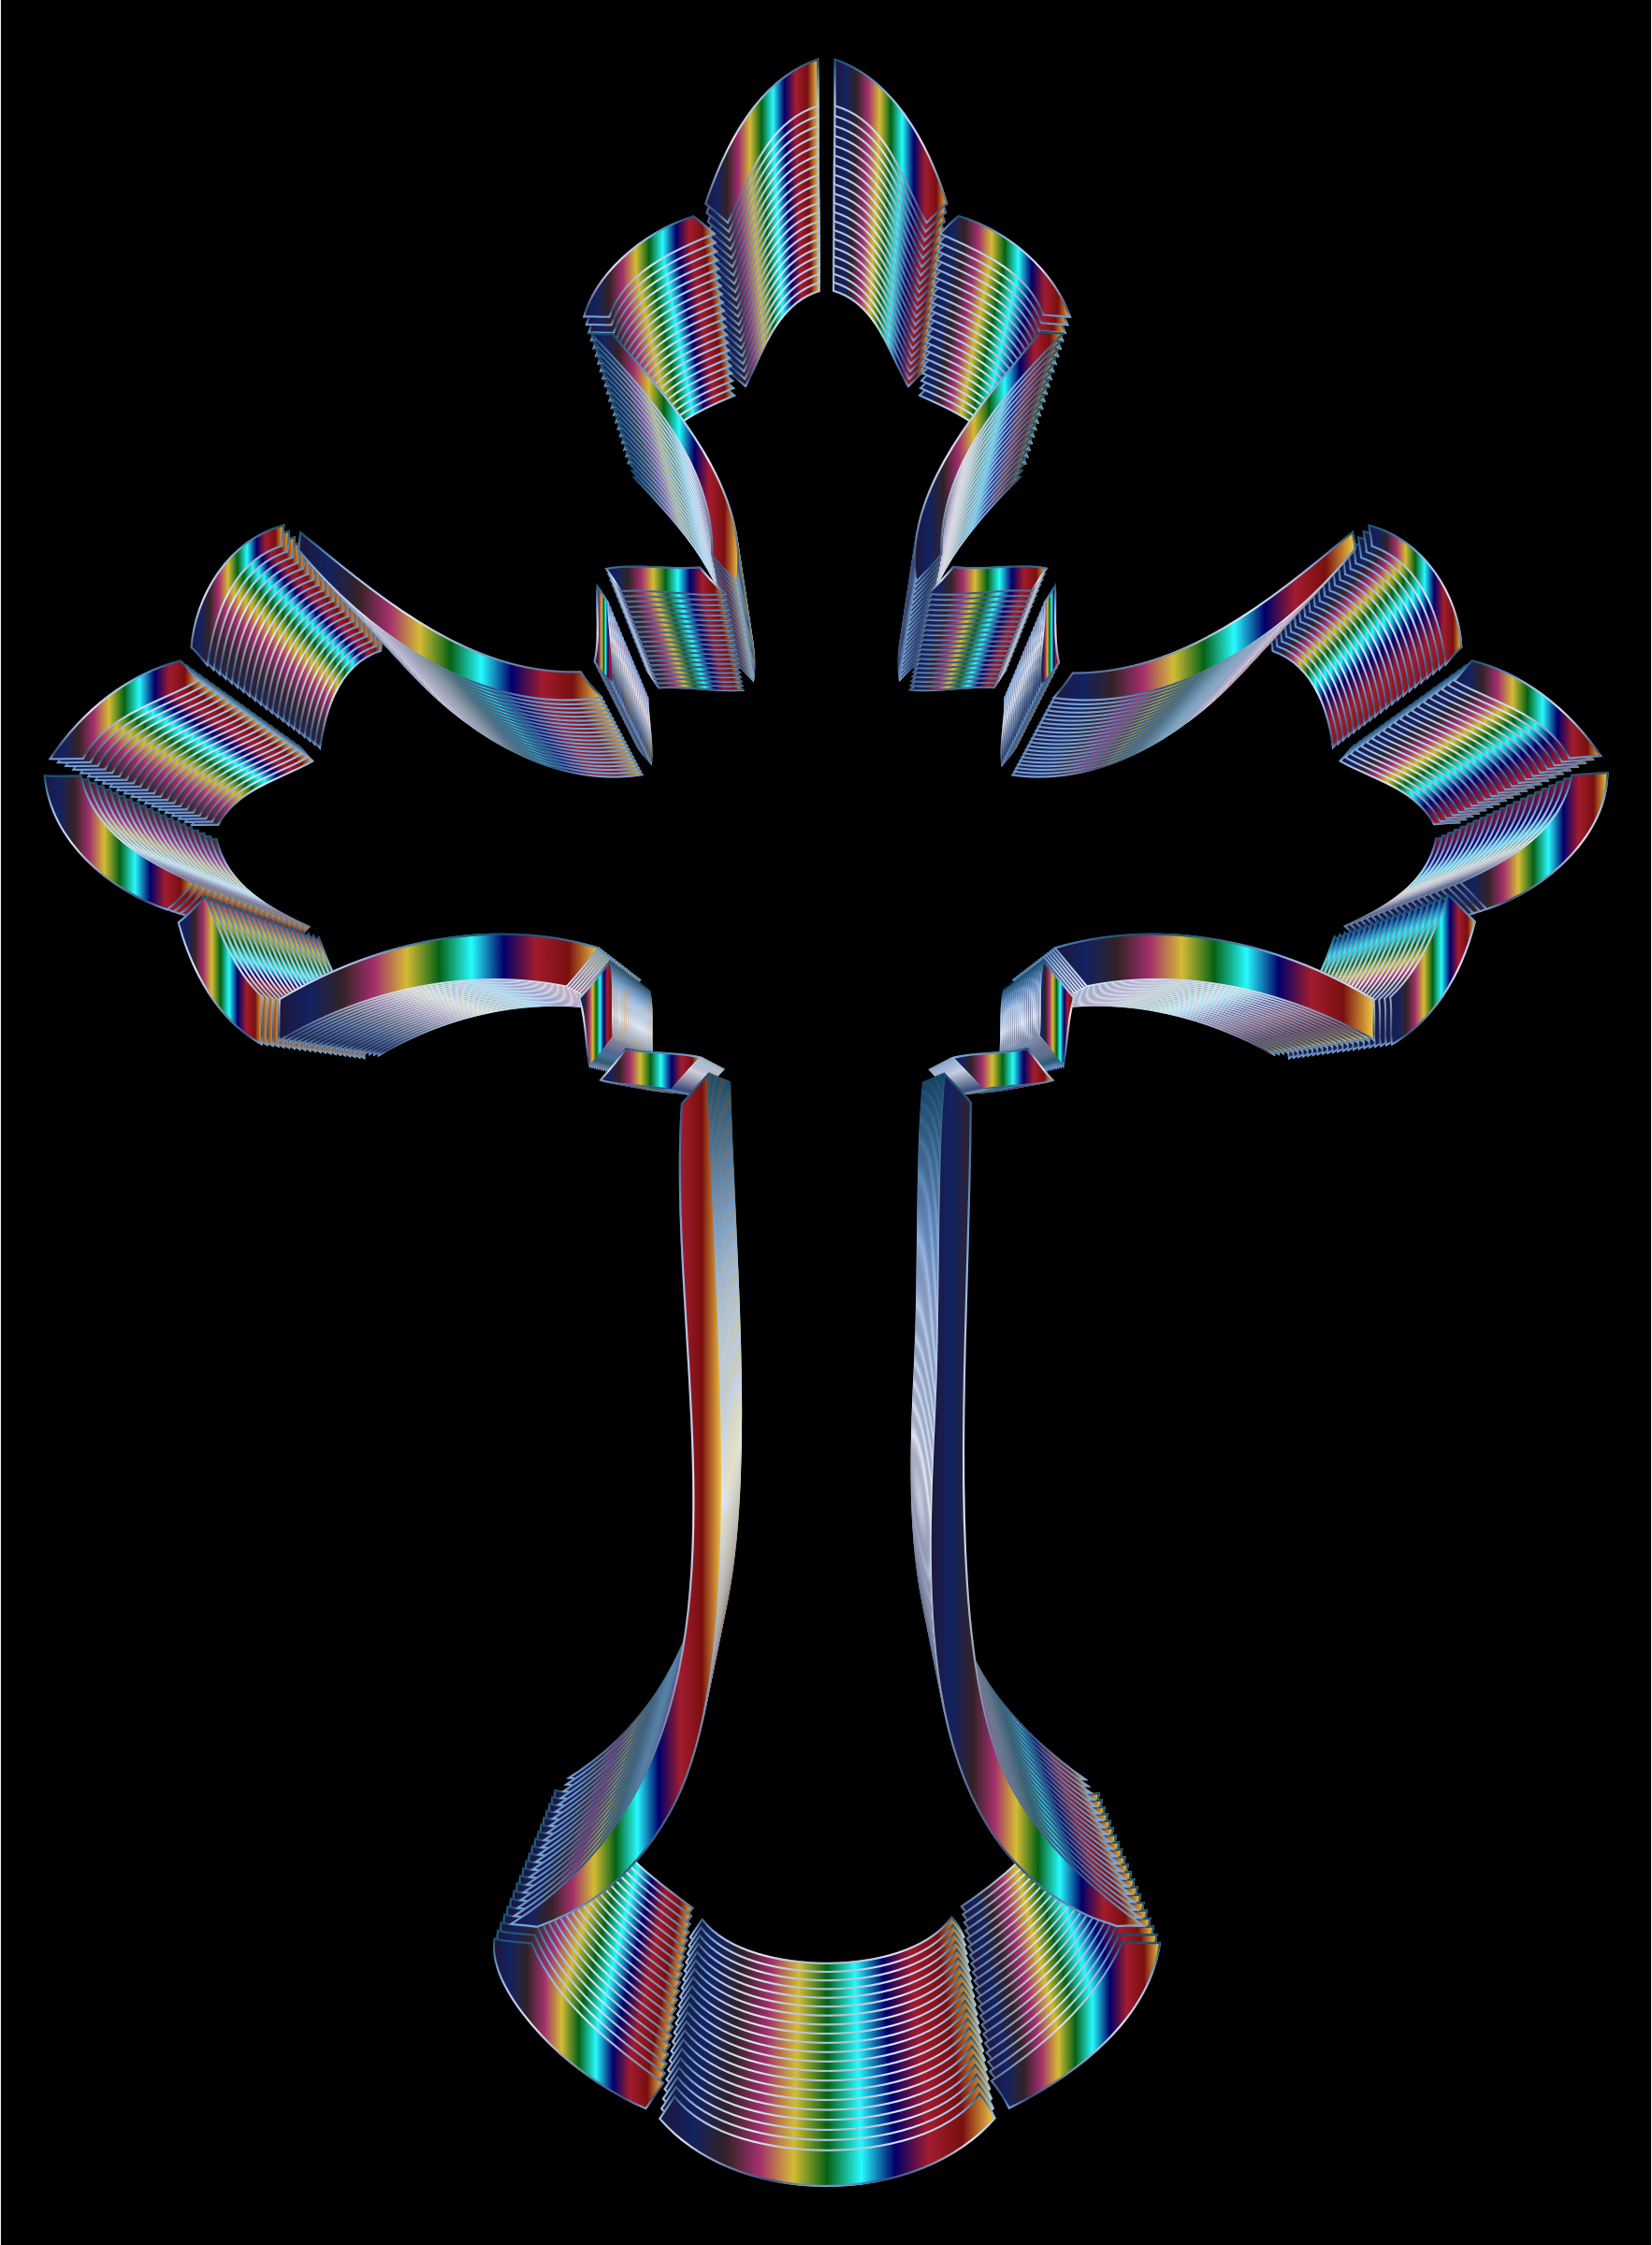 Iridescent Ornate Cross by GDJ